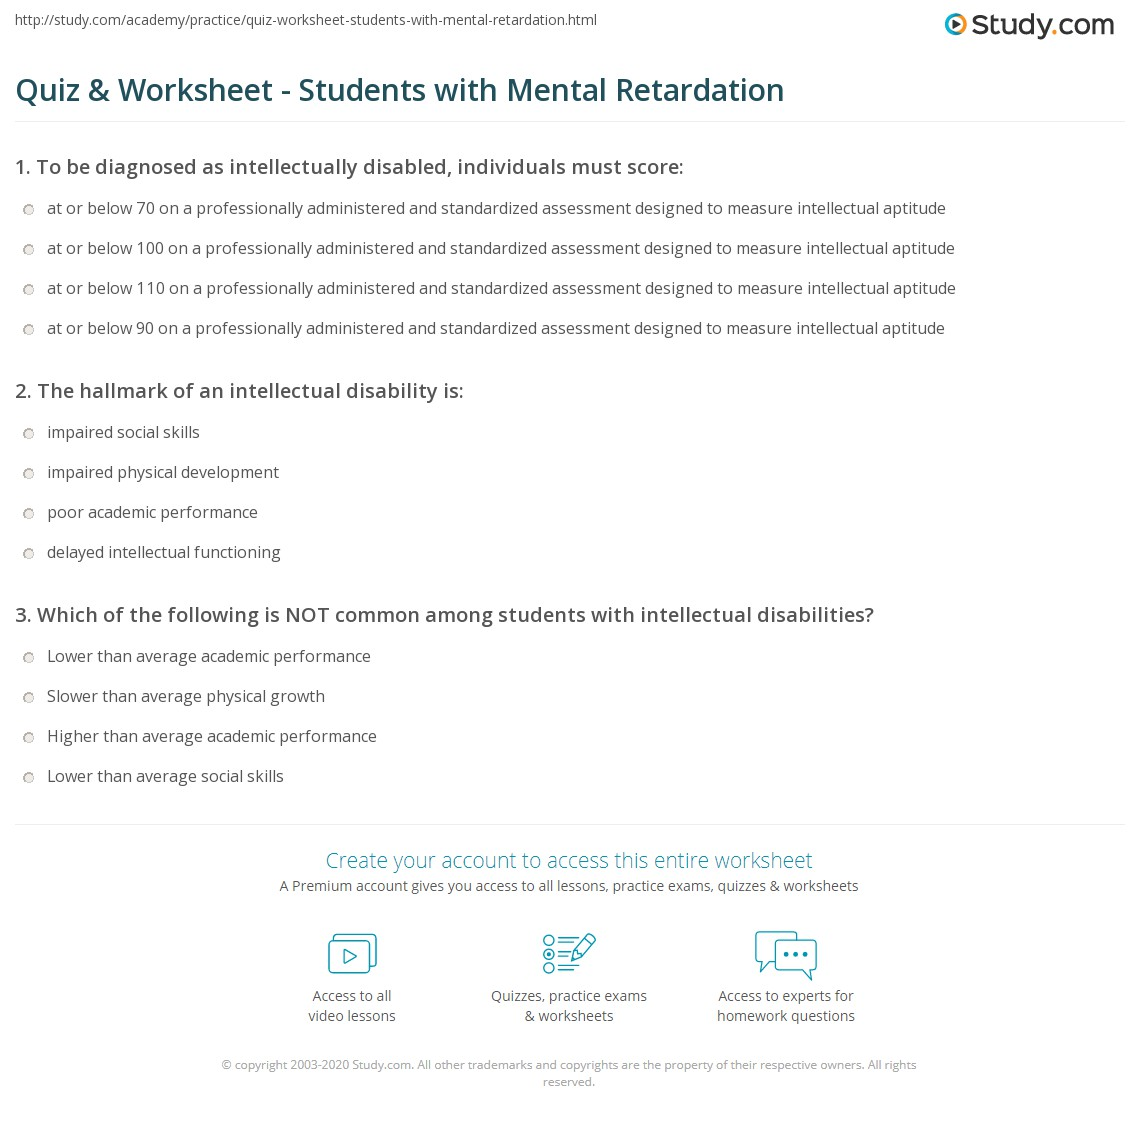 Quiz & Worksheet - Students with Mental Retardation | Study.com